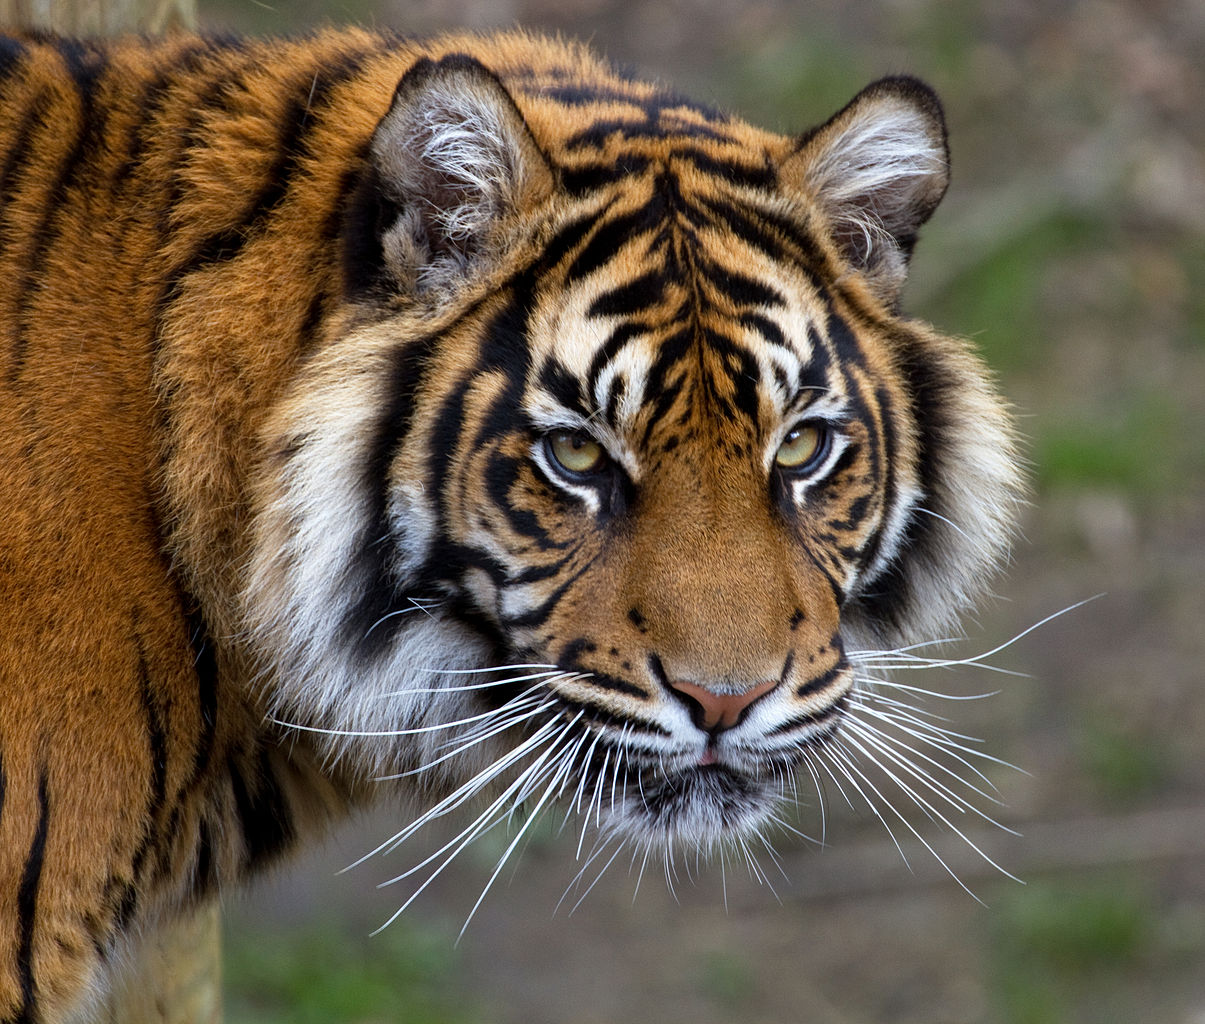 https://upload.wikimedia.org/wikipedia/commons/thumb/f/f8/Sumatran_Tiger_5_(6964685356).jpg/1205px-Sumatran_Tiger_5_(6964685356).jpg